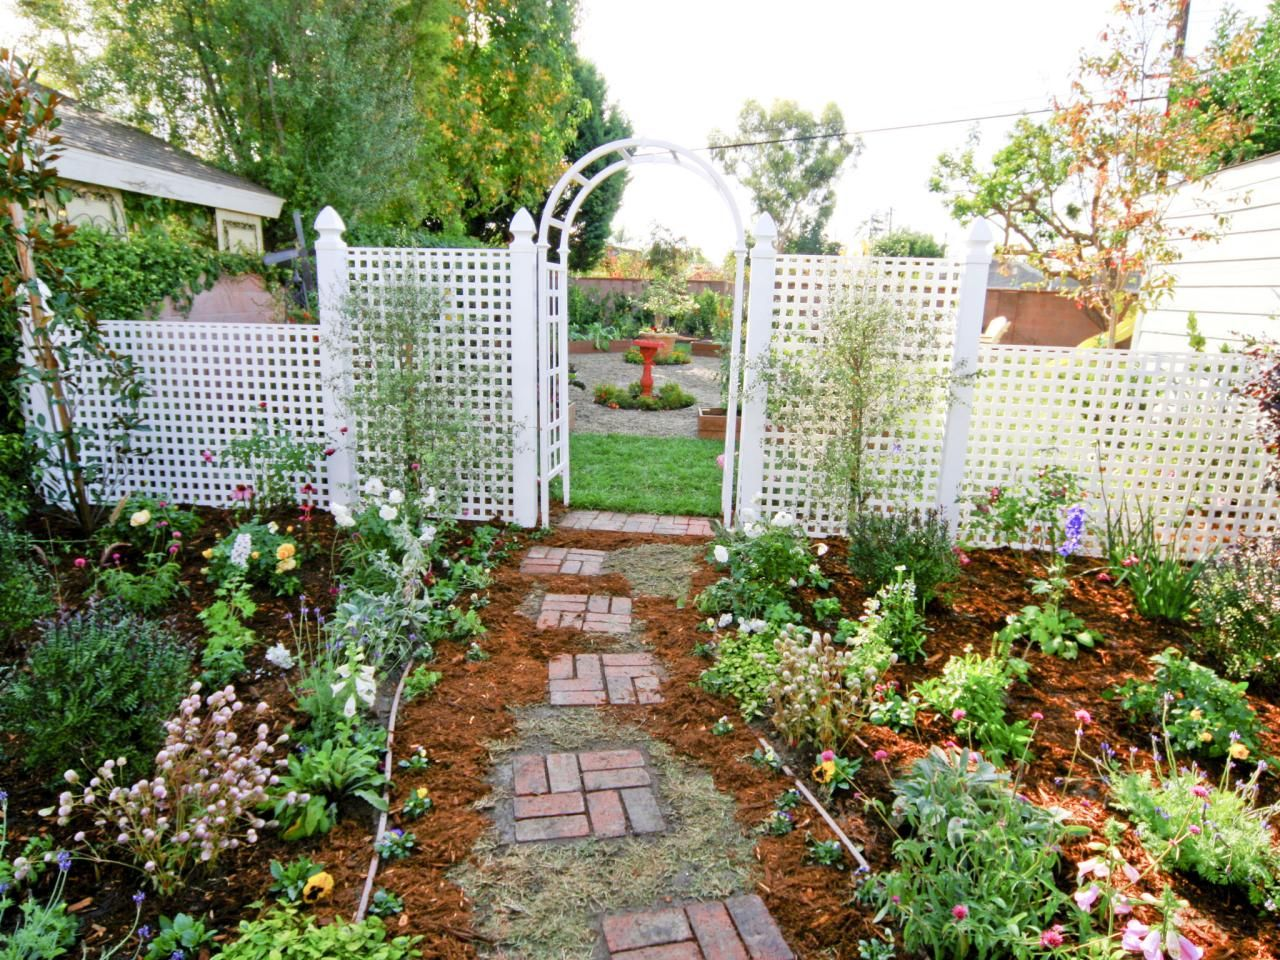 1000 images about Backyard ideas on Pinterest Diy backyard ideas Low  maintenance yard and Backyards. Landscape Tools For Sale